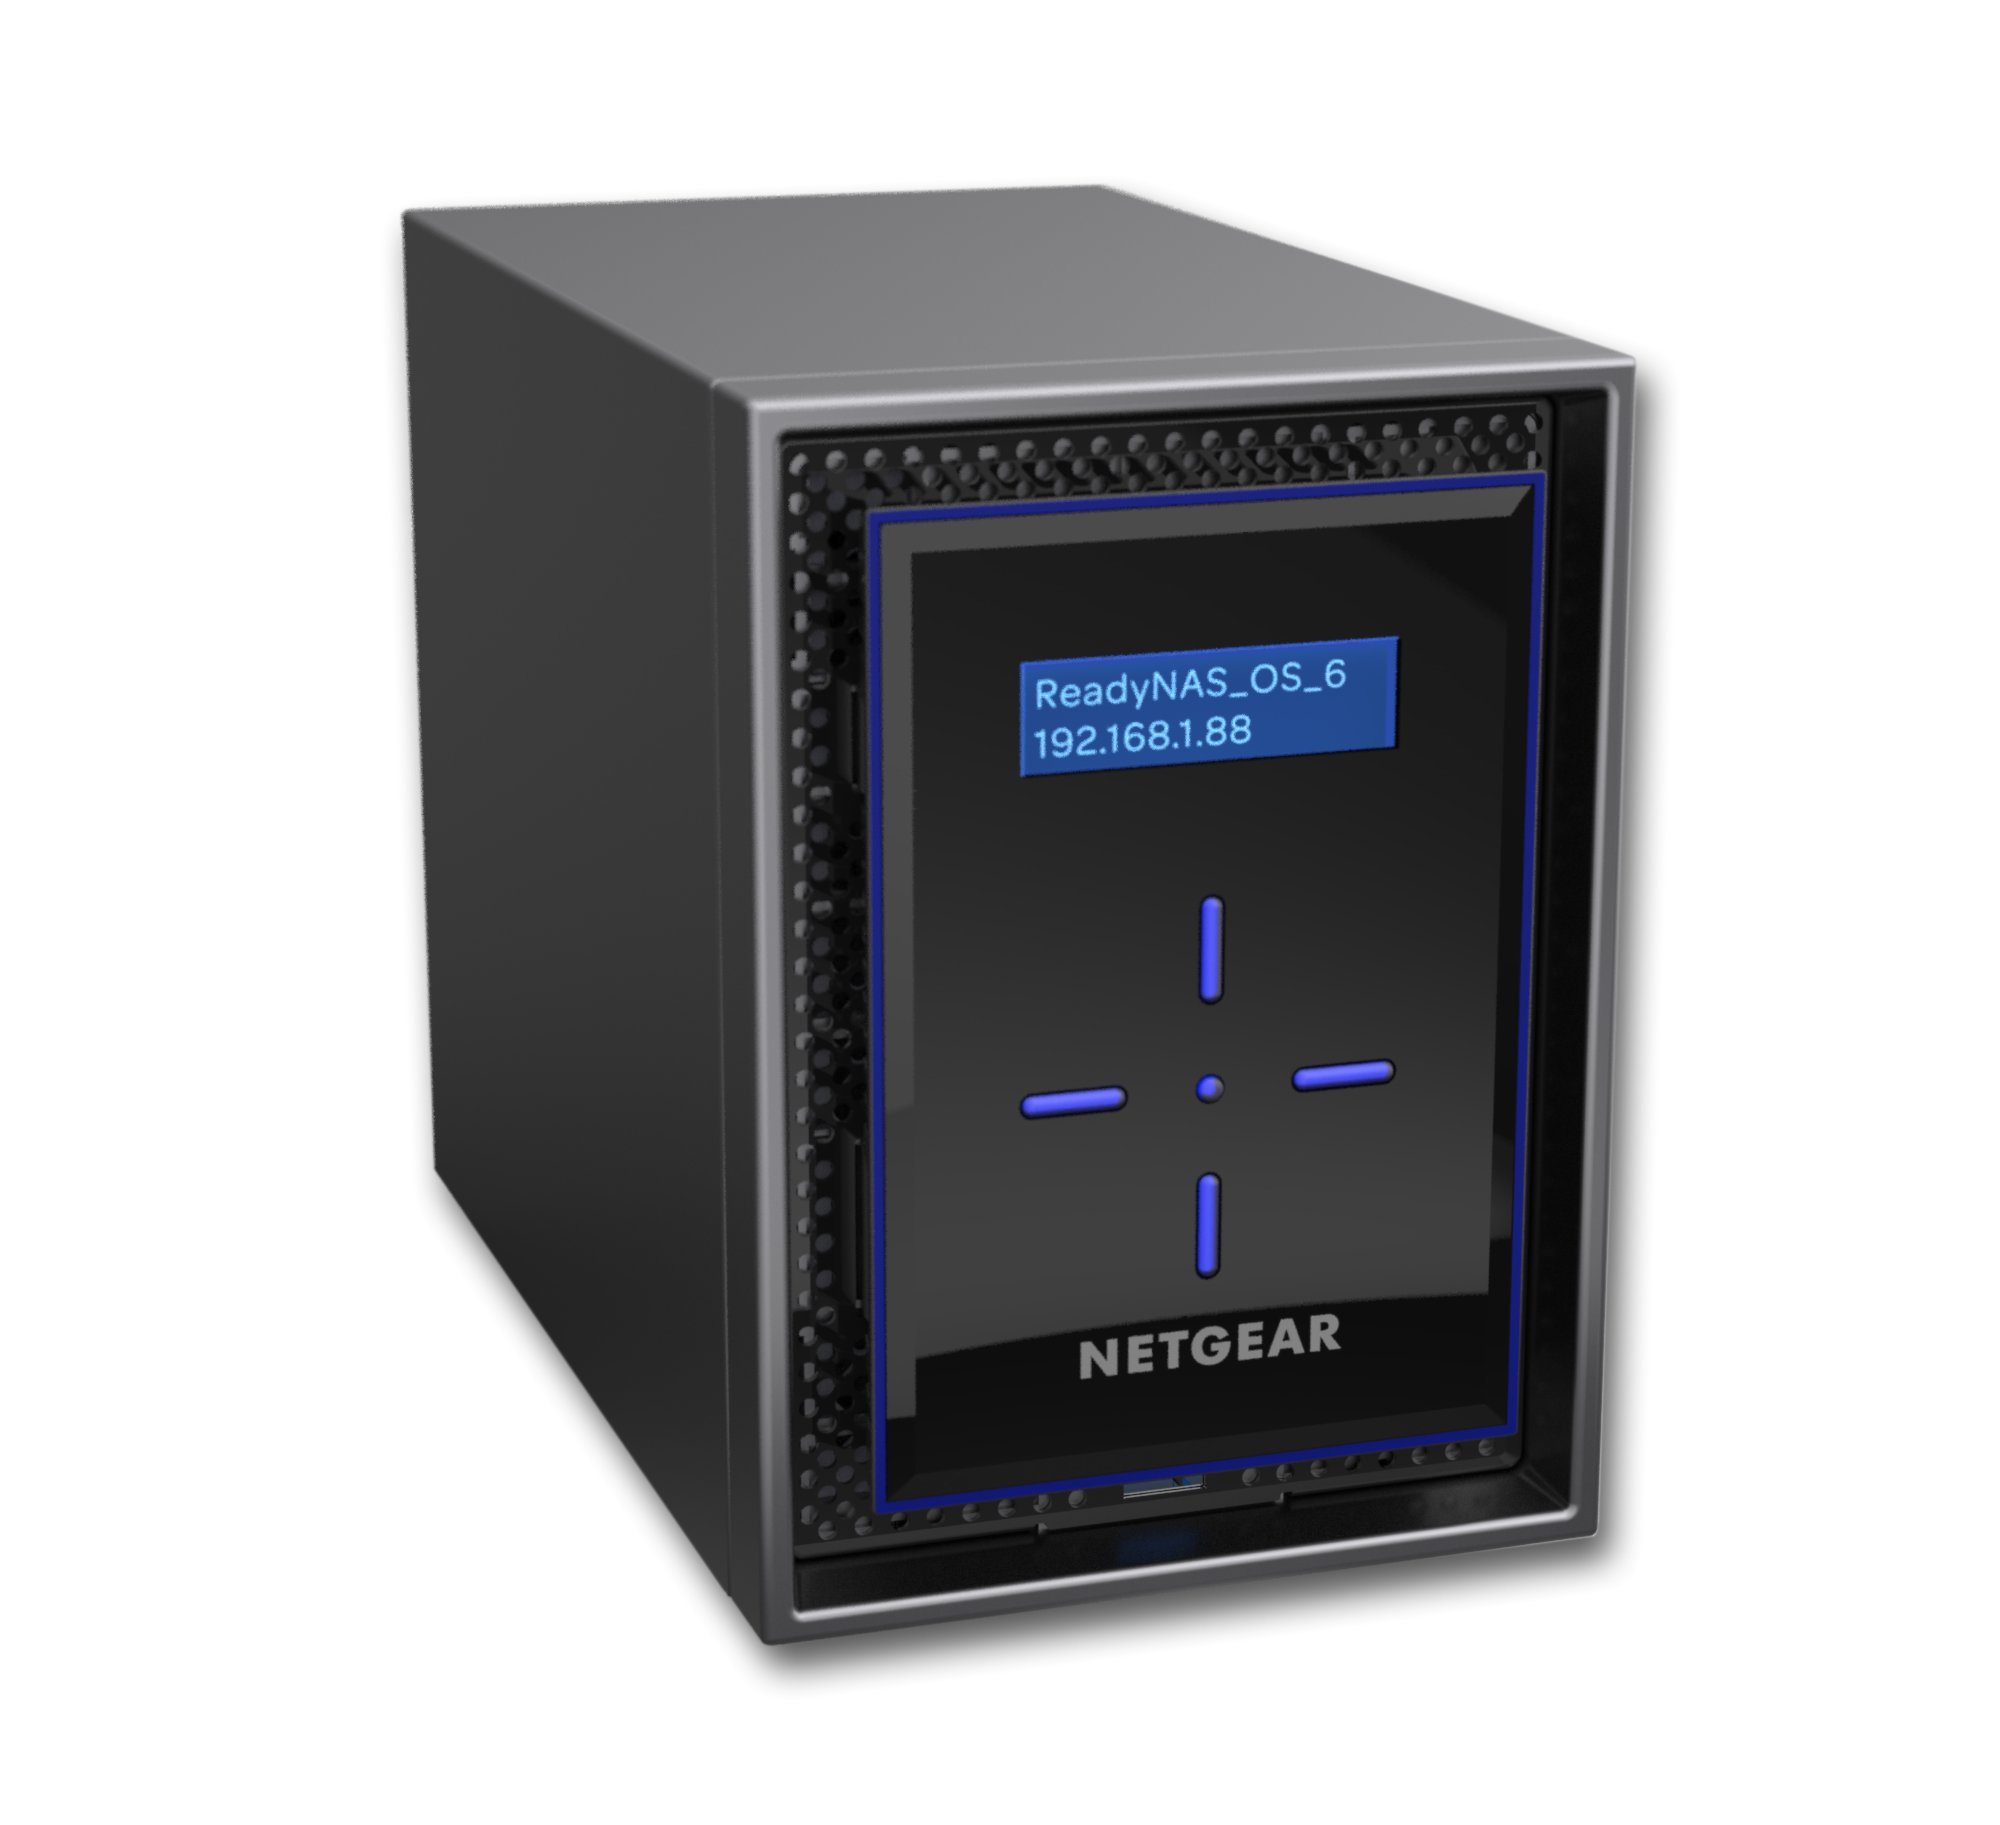 NETGEAR ReadyNAS RN422 2 Bay Diskless High Performance NAS, 20TB Capacity Network Attached Storage, Intel 1.5GHz Dual Core Processor, 2GB RAM, (RN42200) by NETGEAR